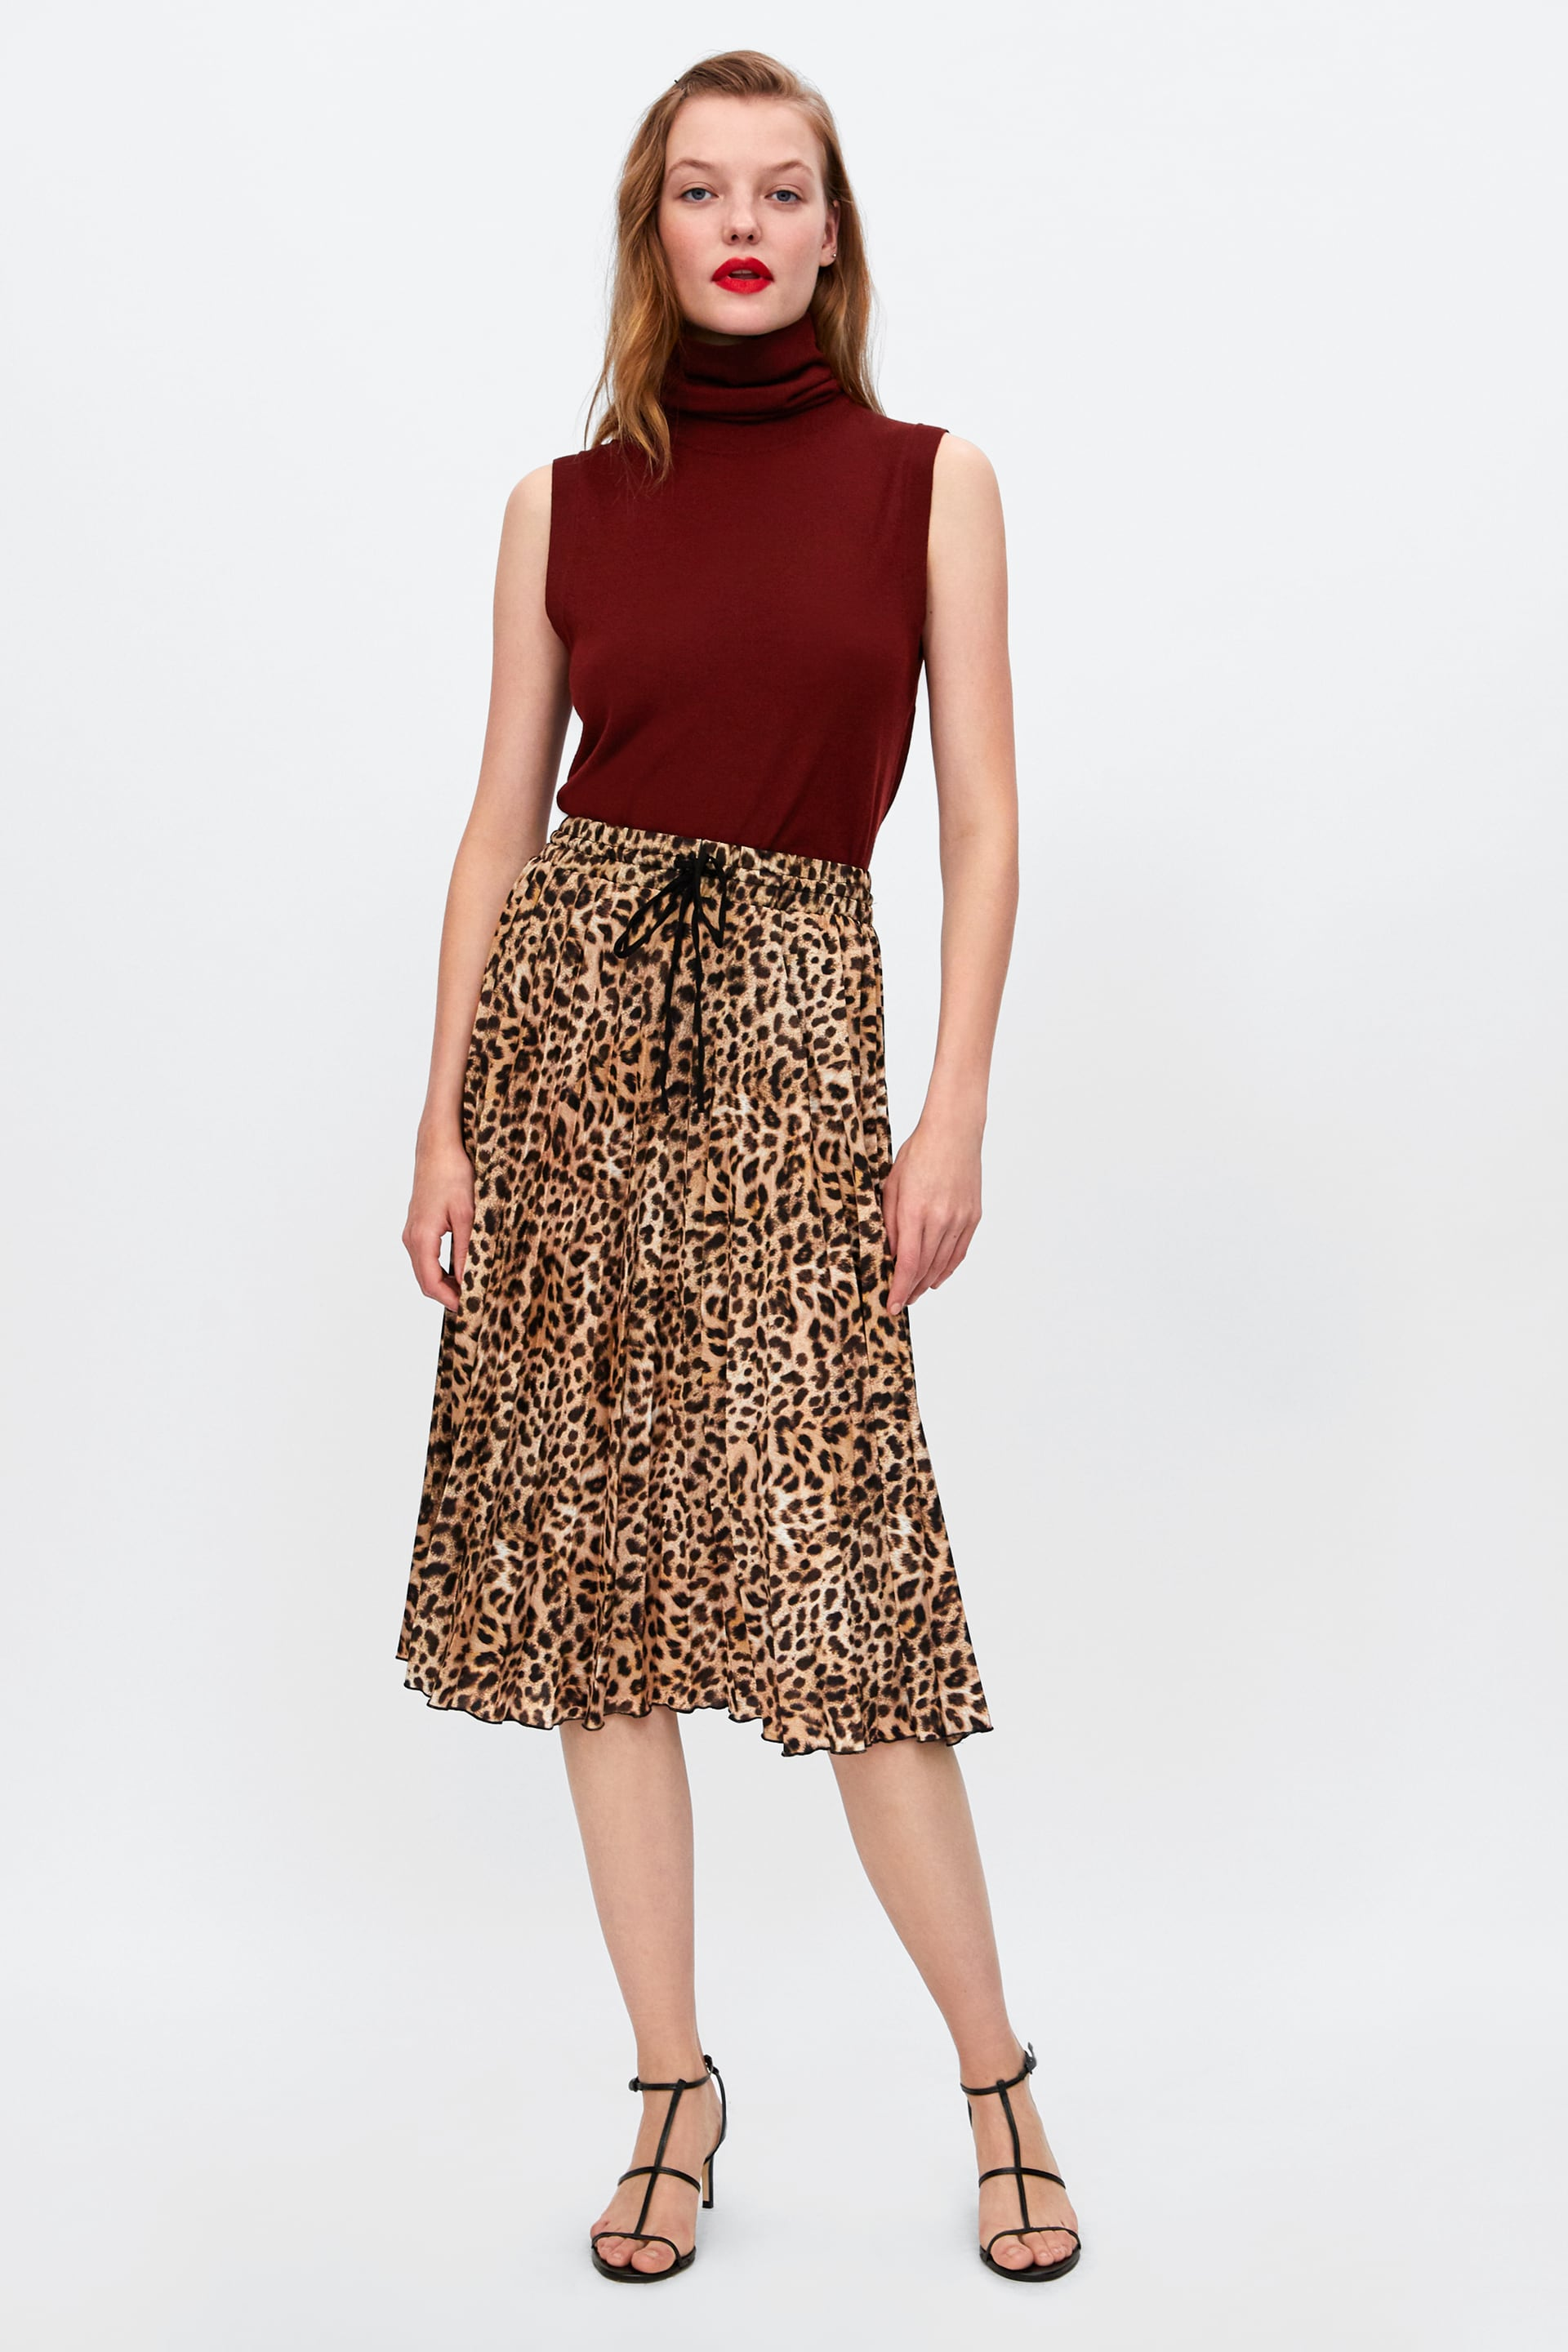 Gonna midi animalier Zara a 39,95 euro